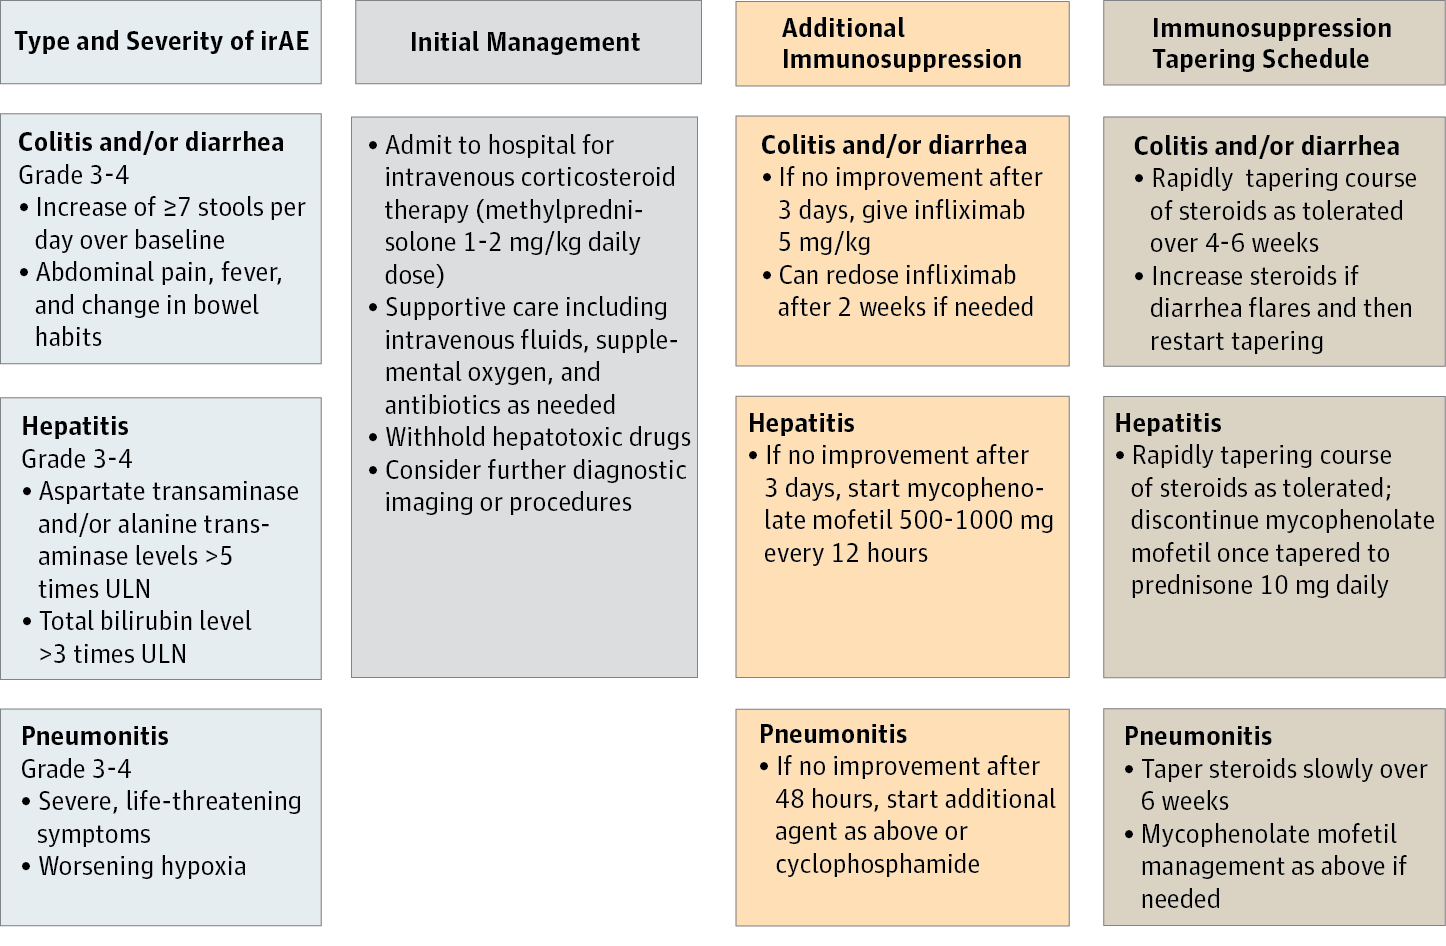 Treatment Of The Immune Related Adverse Effects Of Immune